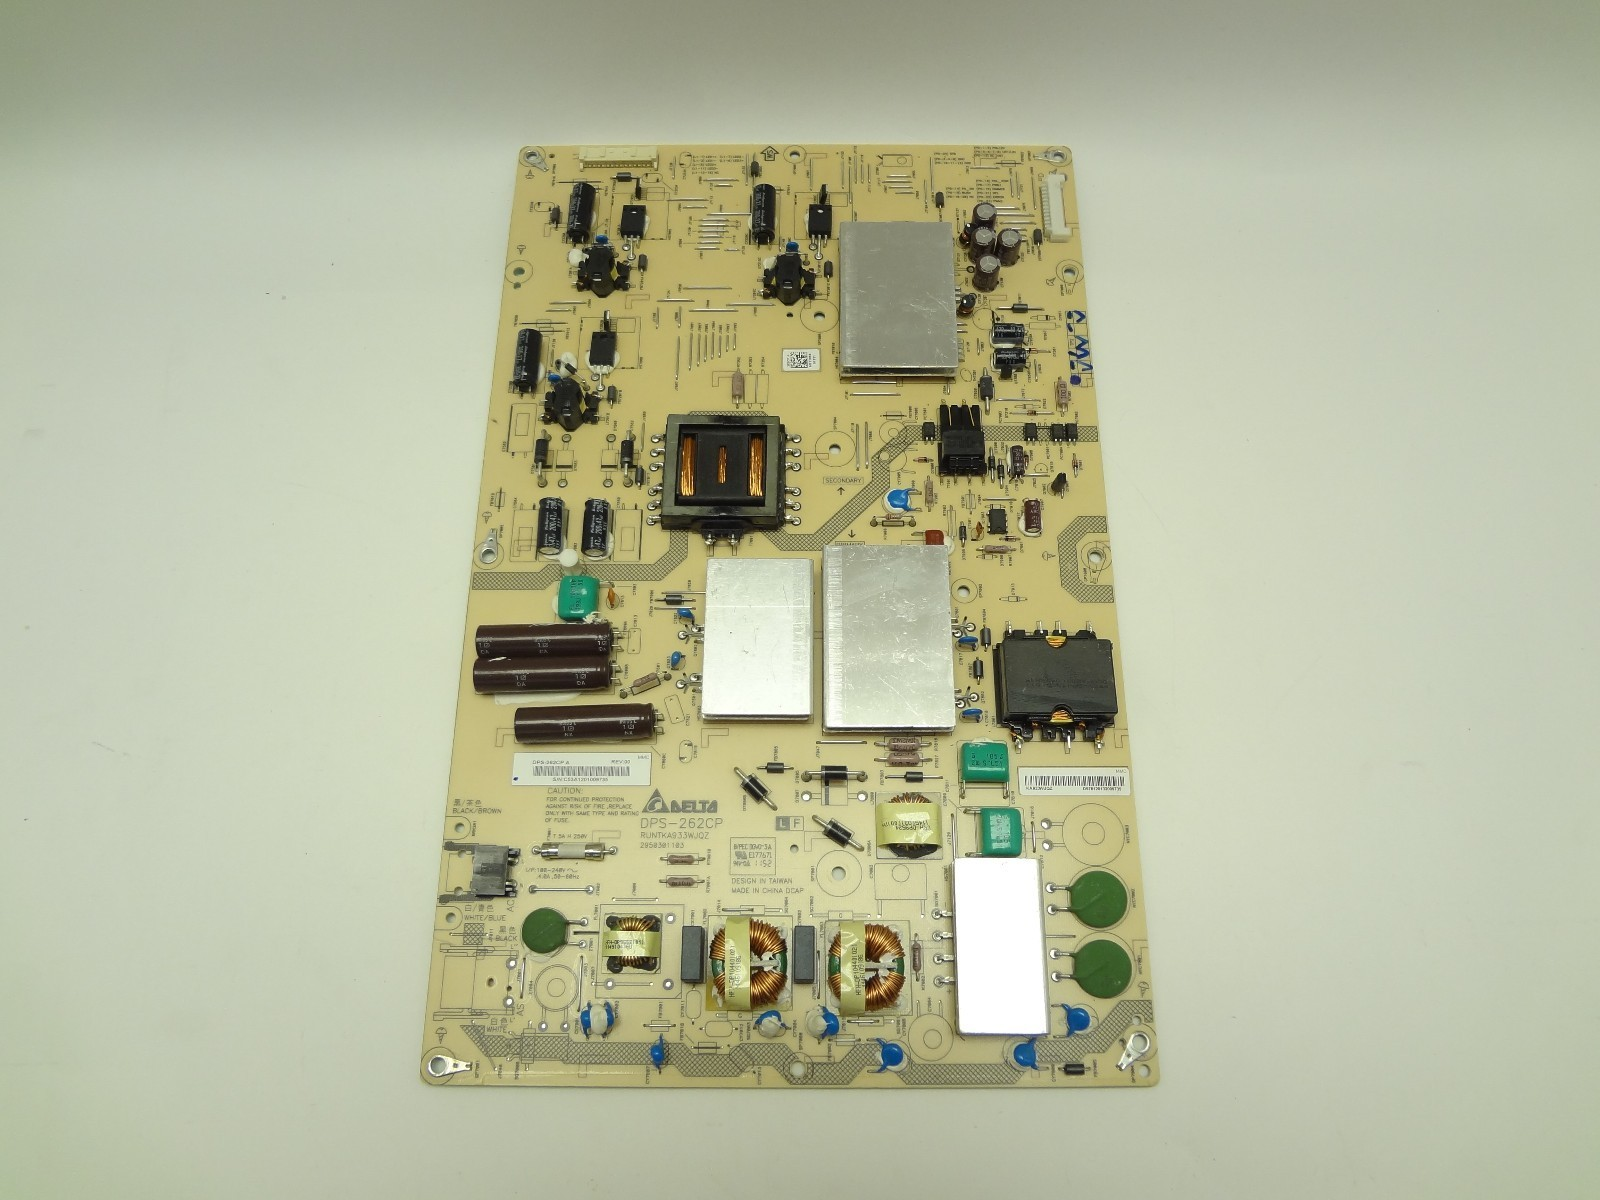 "used Sharp 70"" LC-70LE640U DPS-262CP LCD LED Power Supply Board RUNTKA933WJQZ"